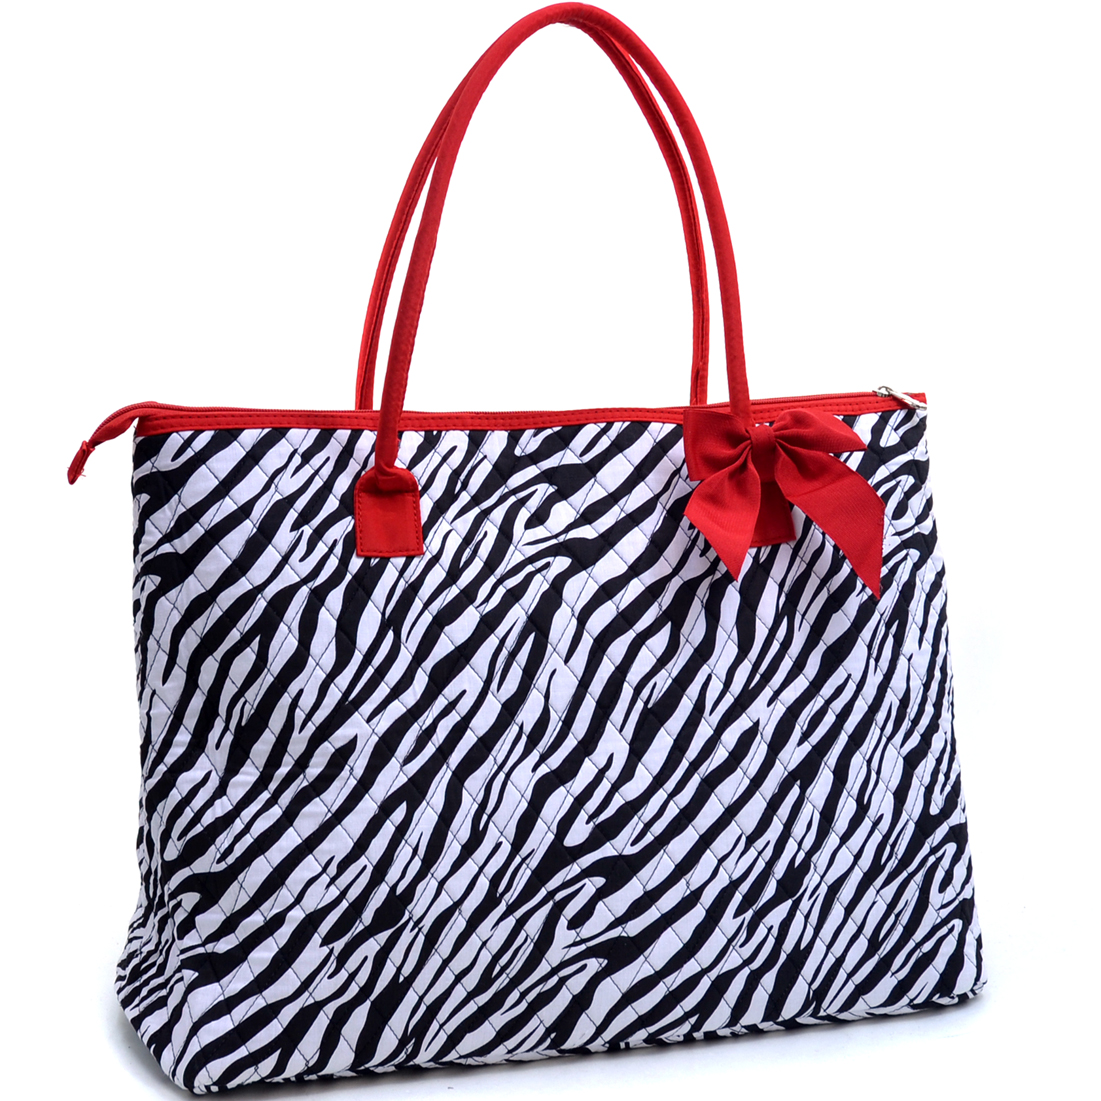 Rosen Blue® Oversized Quilted Tote Bag with Optional Bow Decor in Zebra Print